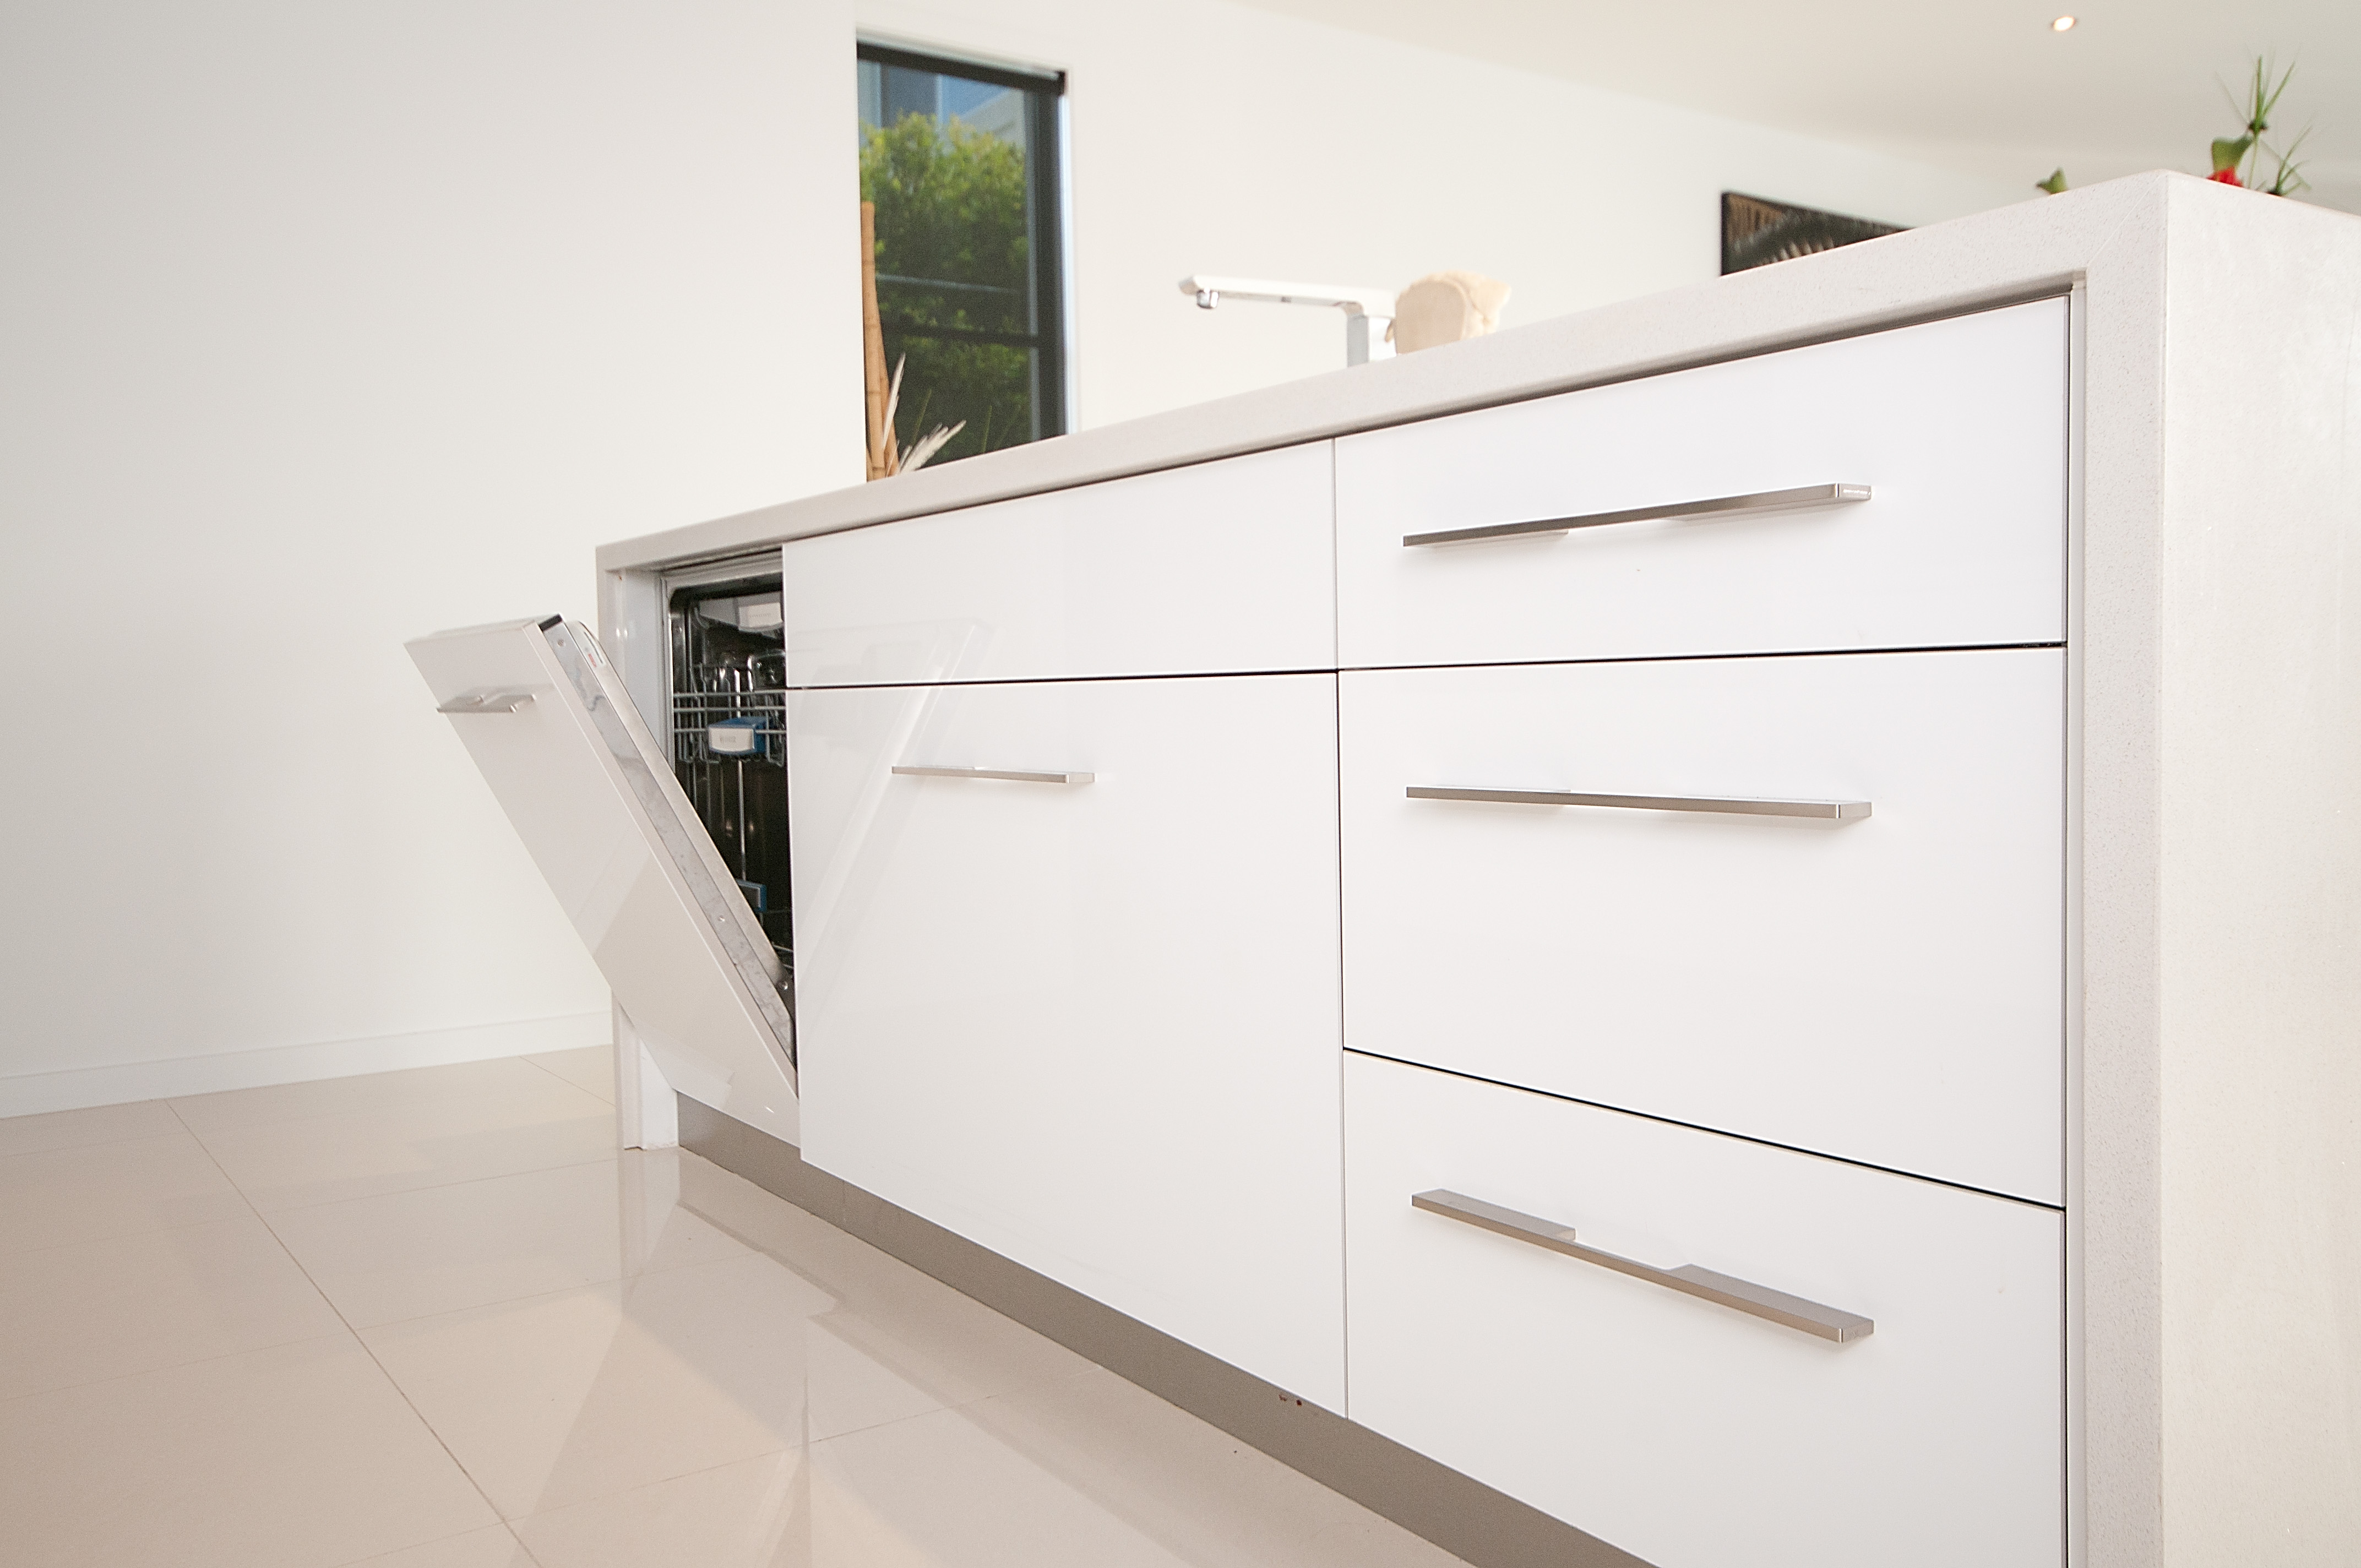 Have accessories and appliances for your kitchen brisbane home show